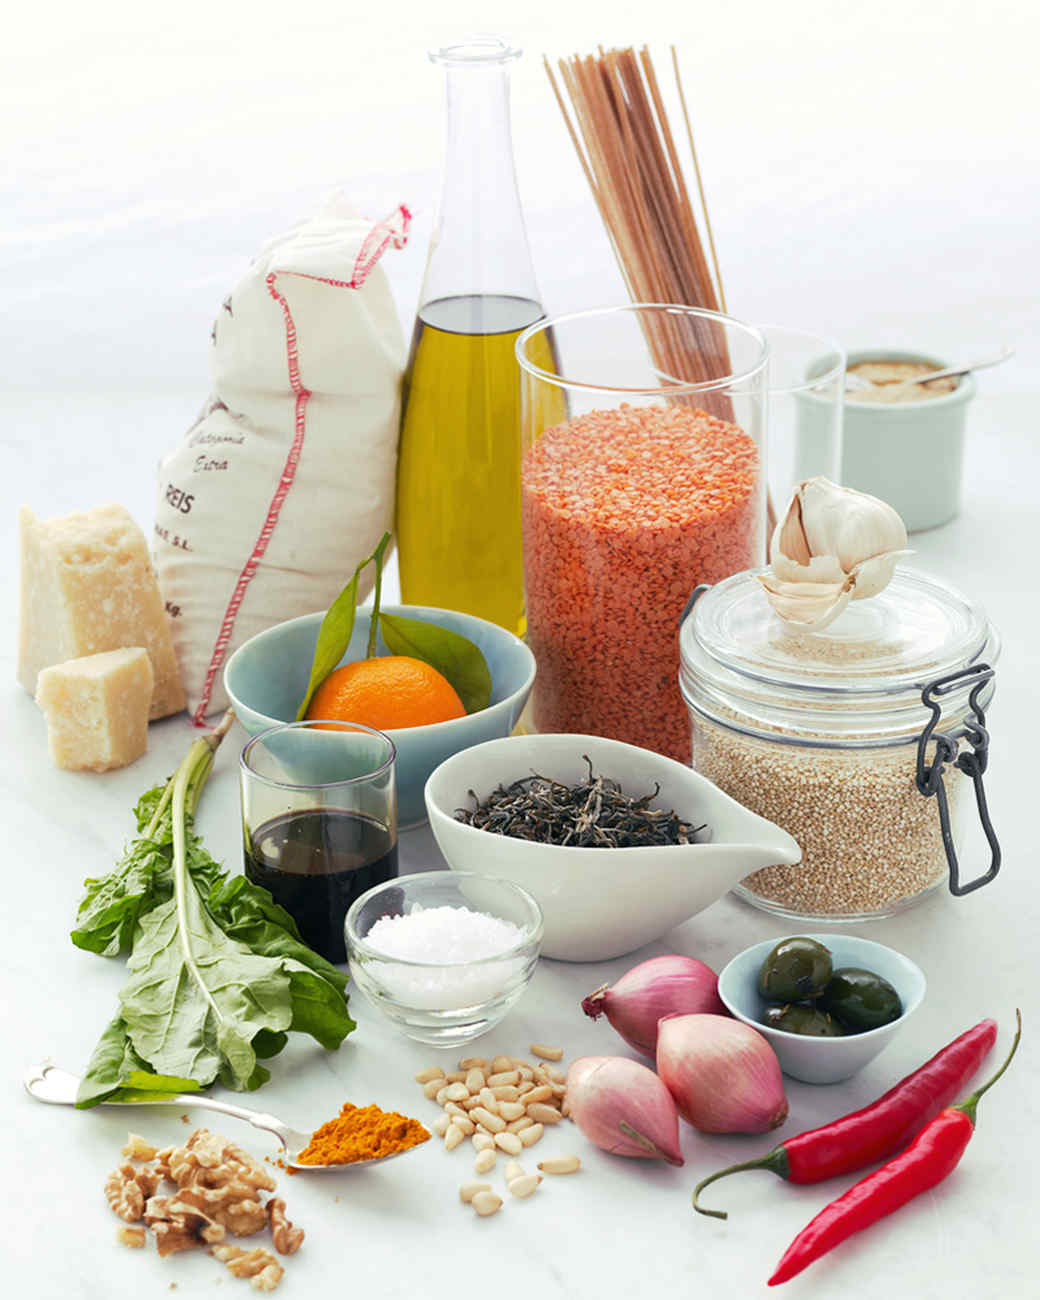 Spring Clean for Cleaner Eating